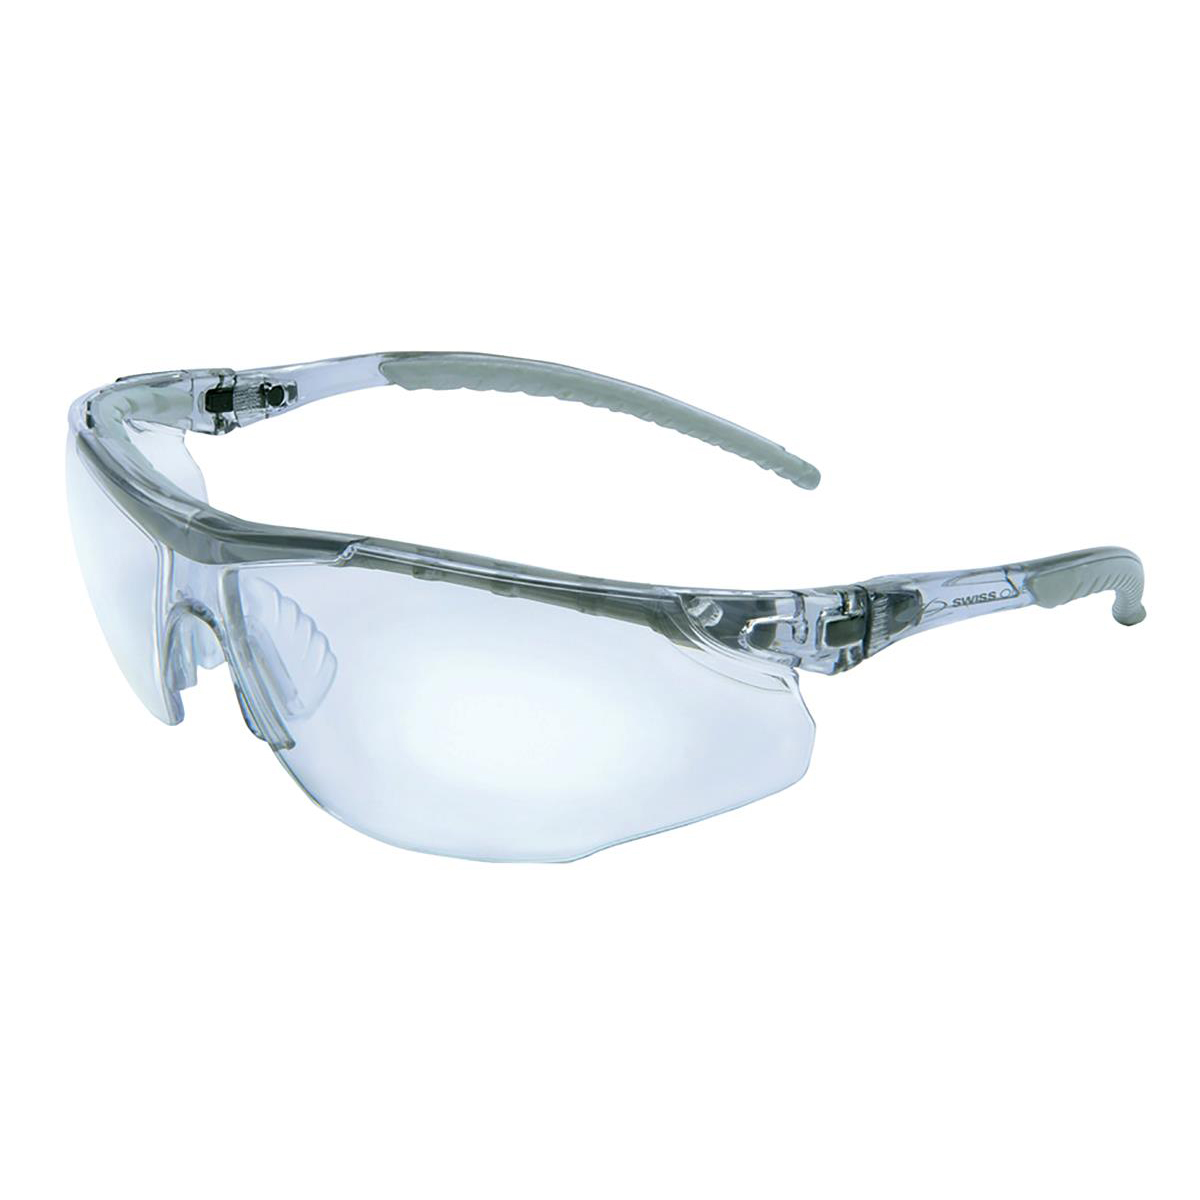 JSP Cayman Safety Spectacles Adjustable with Cord Clear Ref 1CAY23C